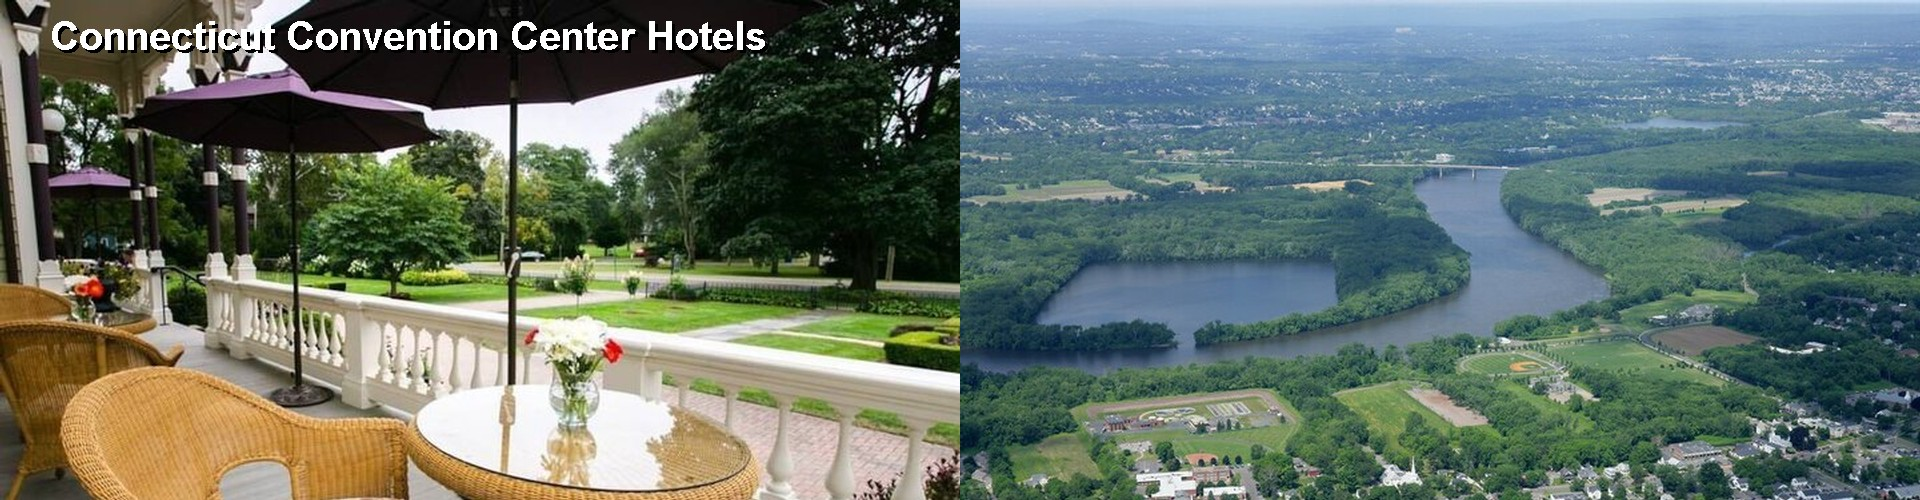 5 Best Hotels near Connecticut Convention Center